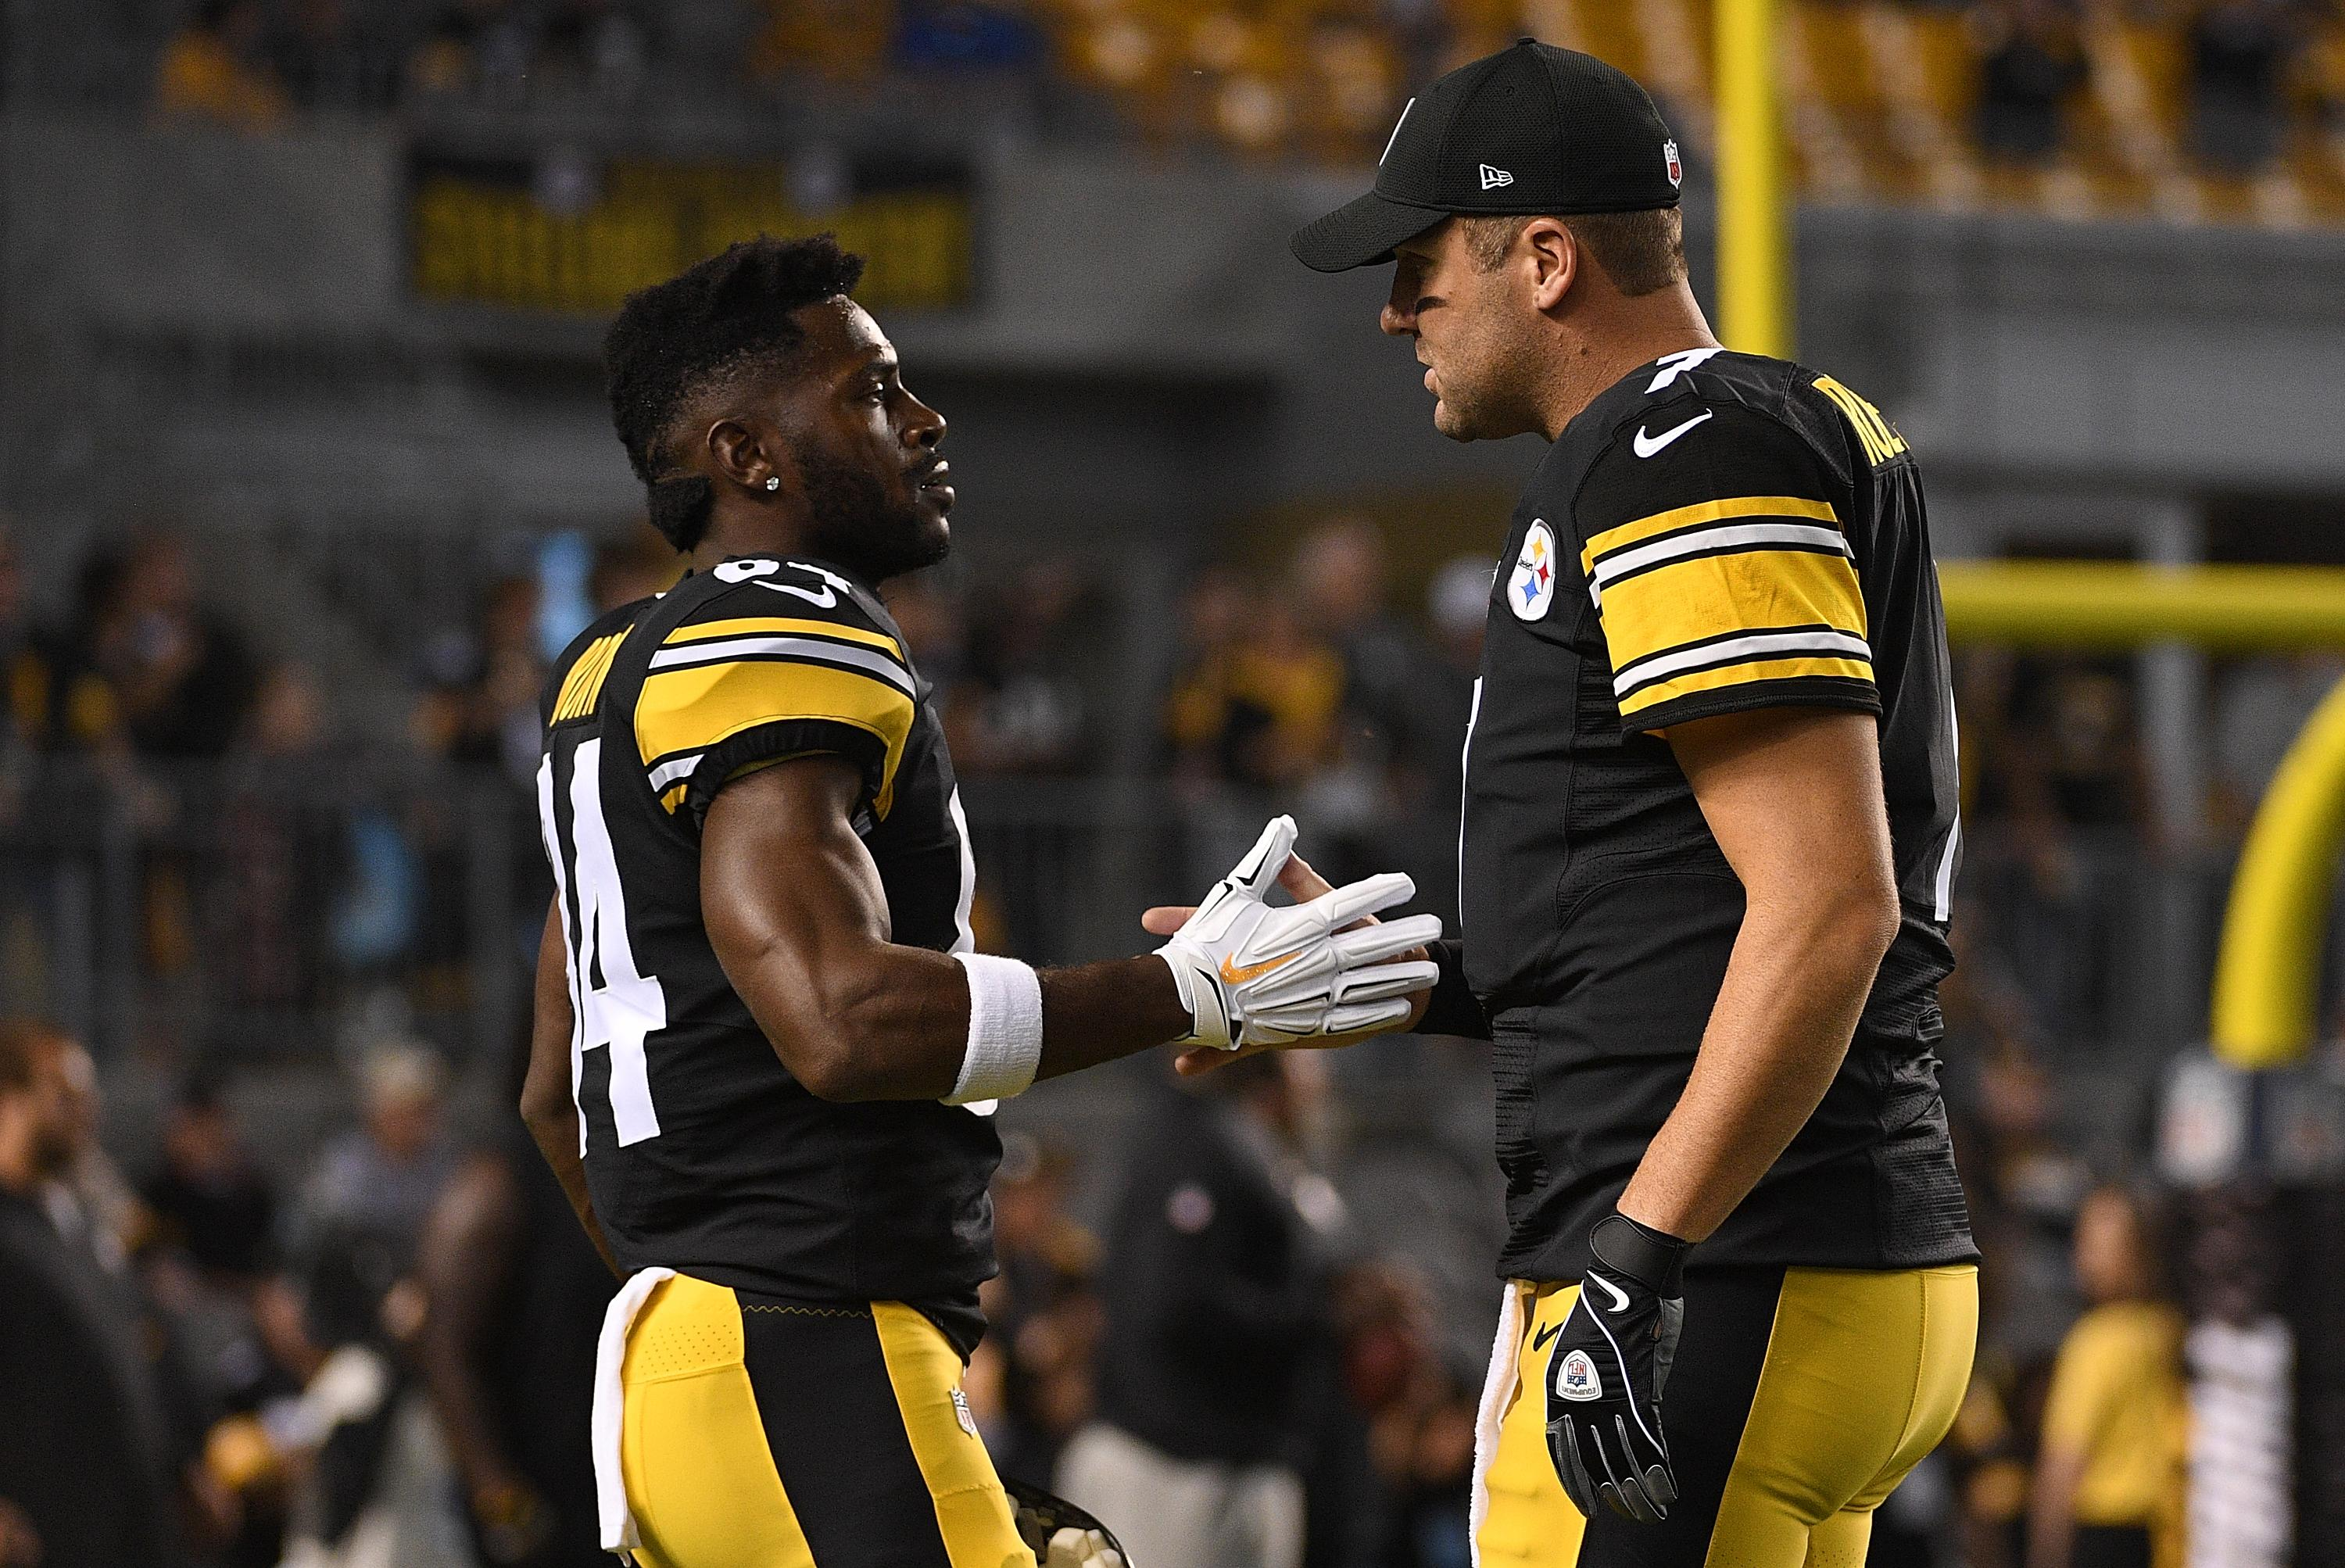 Antonio Brown Had An Outburst Last Week